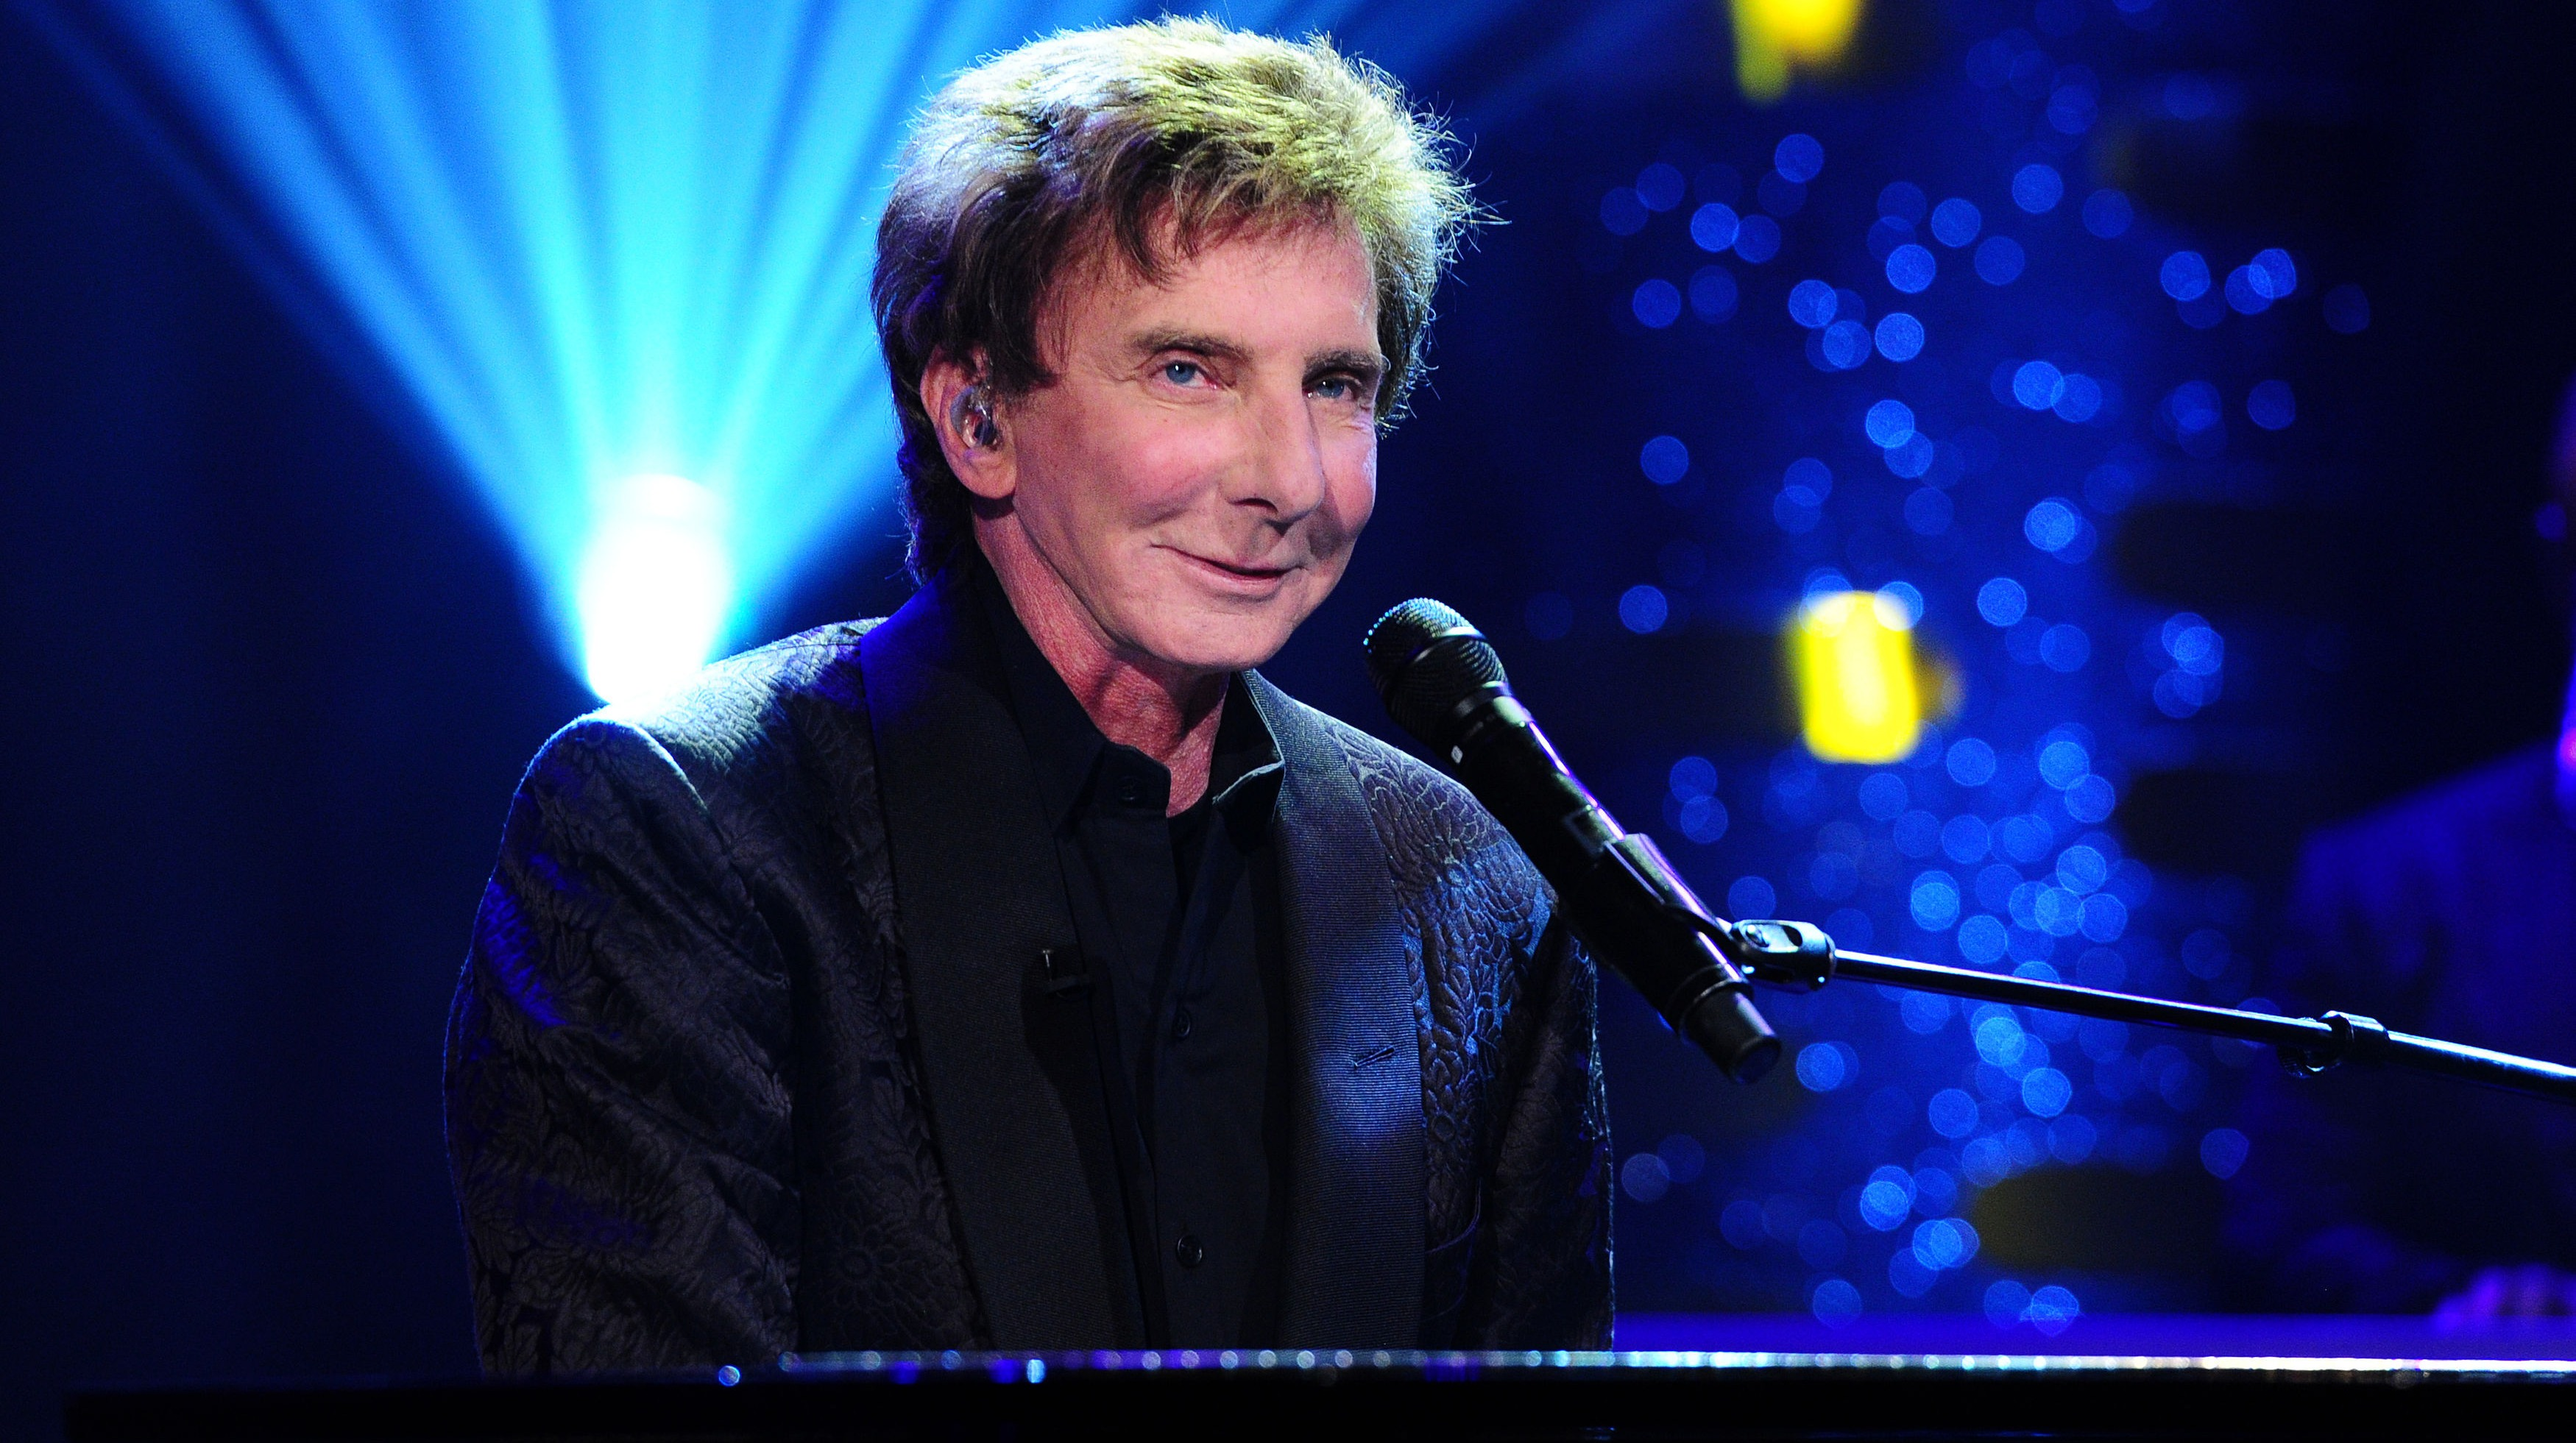 manilow records entire album with singers who have died